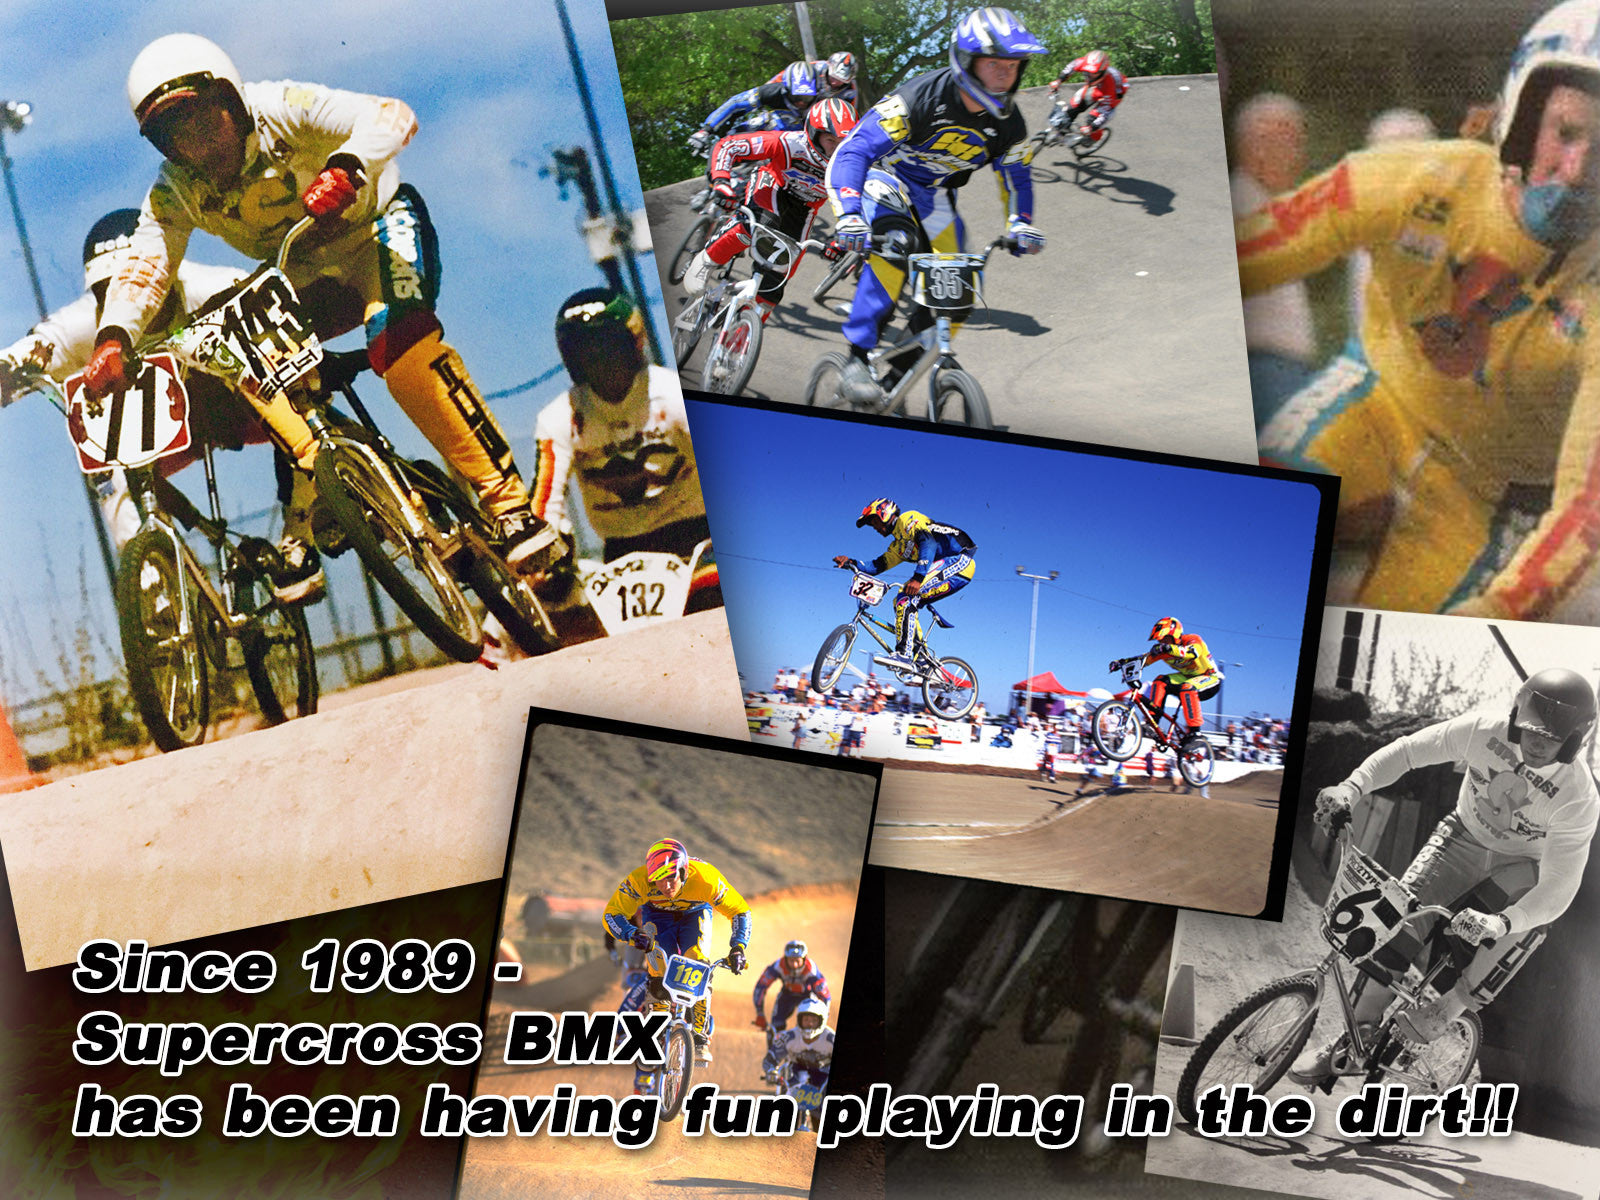 Supercross BMX - BMX Racing History Image